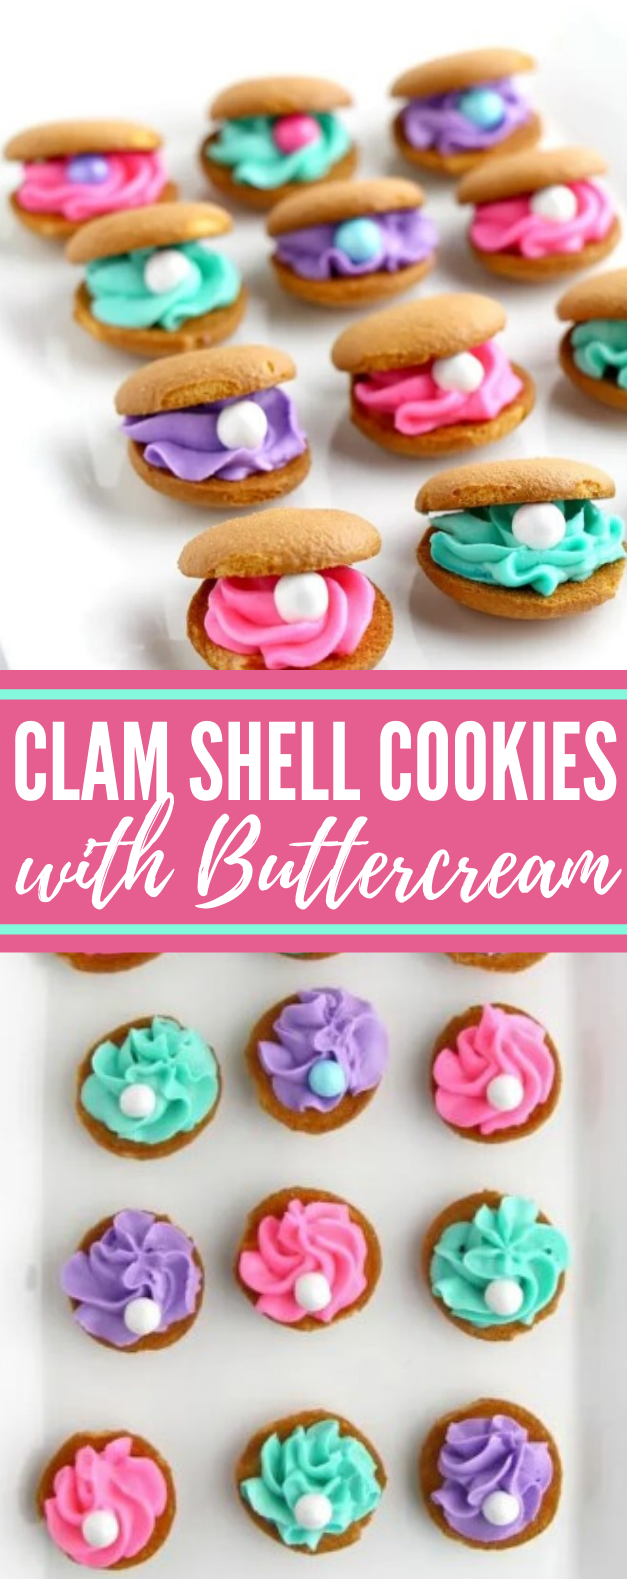 CLAM SHELL COOKIES WITH BUTTERCREAM #desserts #mermaid #cookies #buttercream #sweets